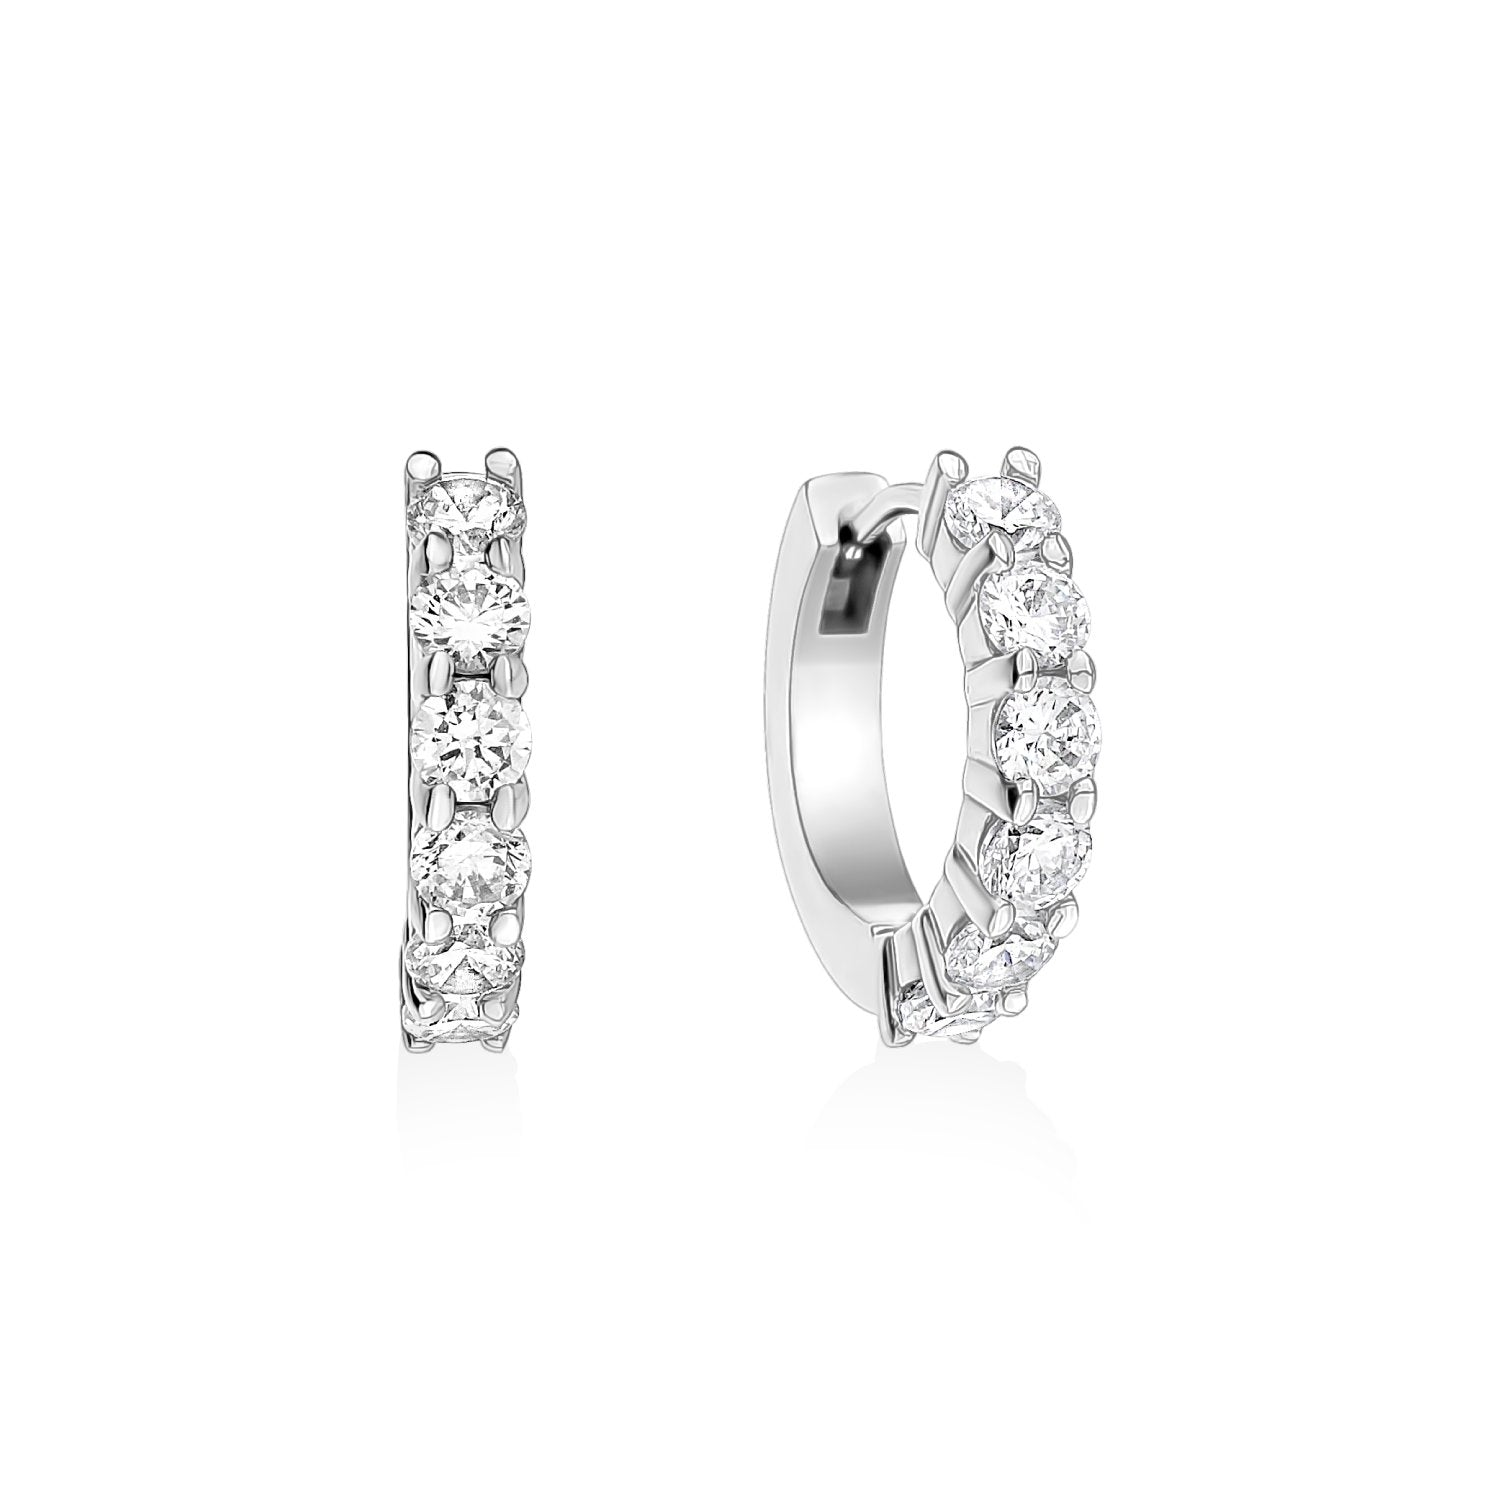 Earrings - 16mm Stainless Steel Cubic Zircon Huggie Earrings